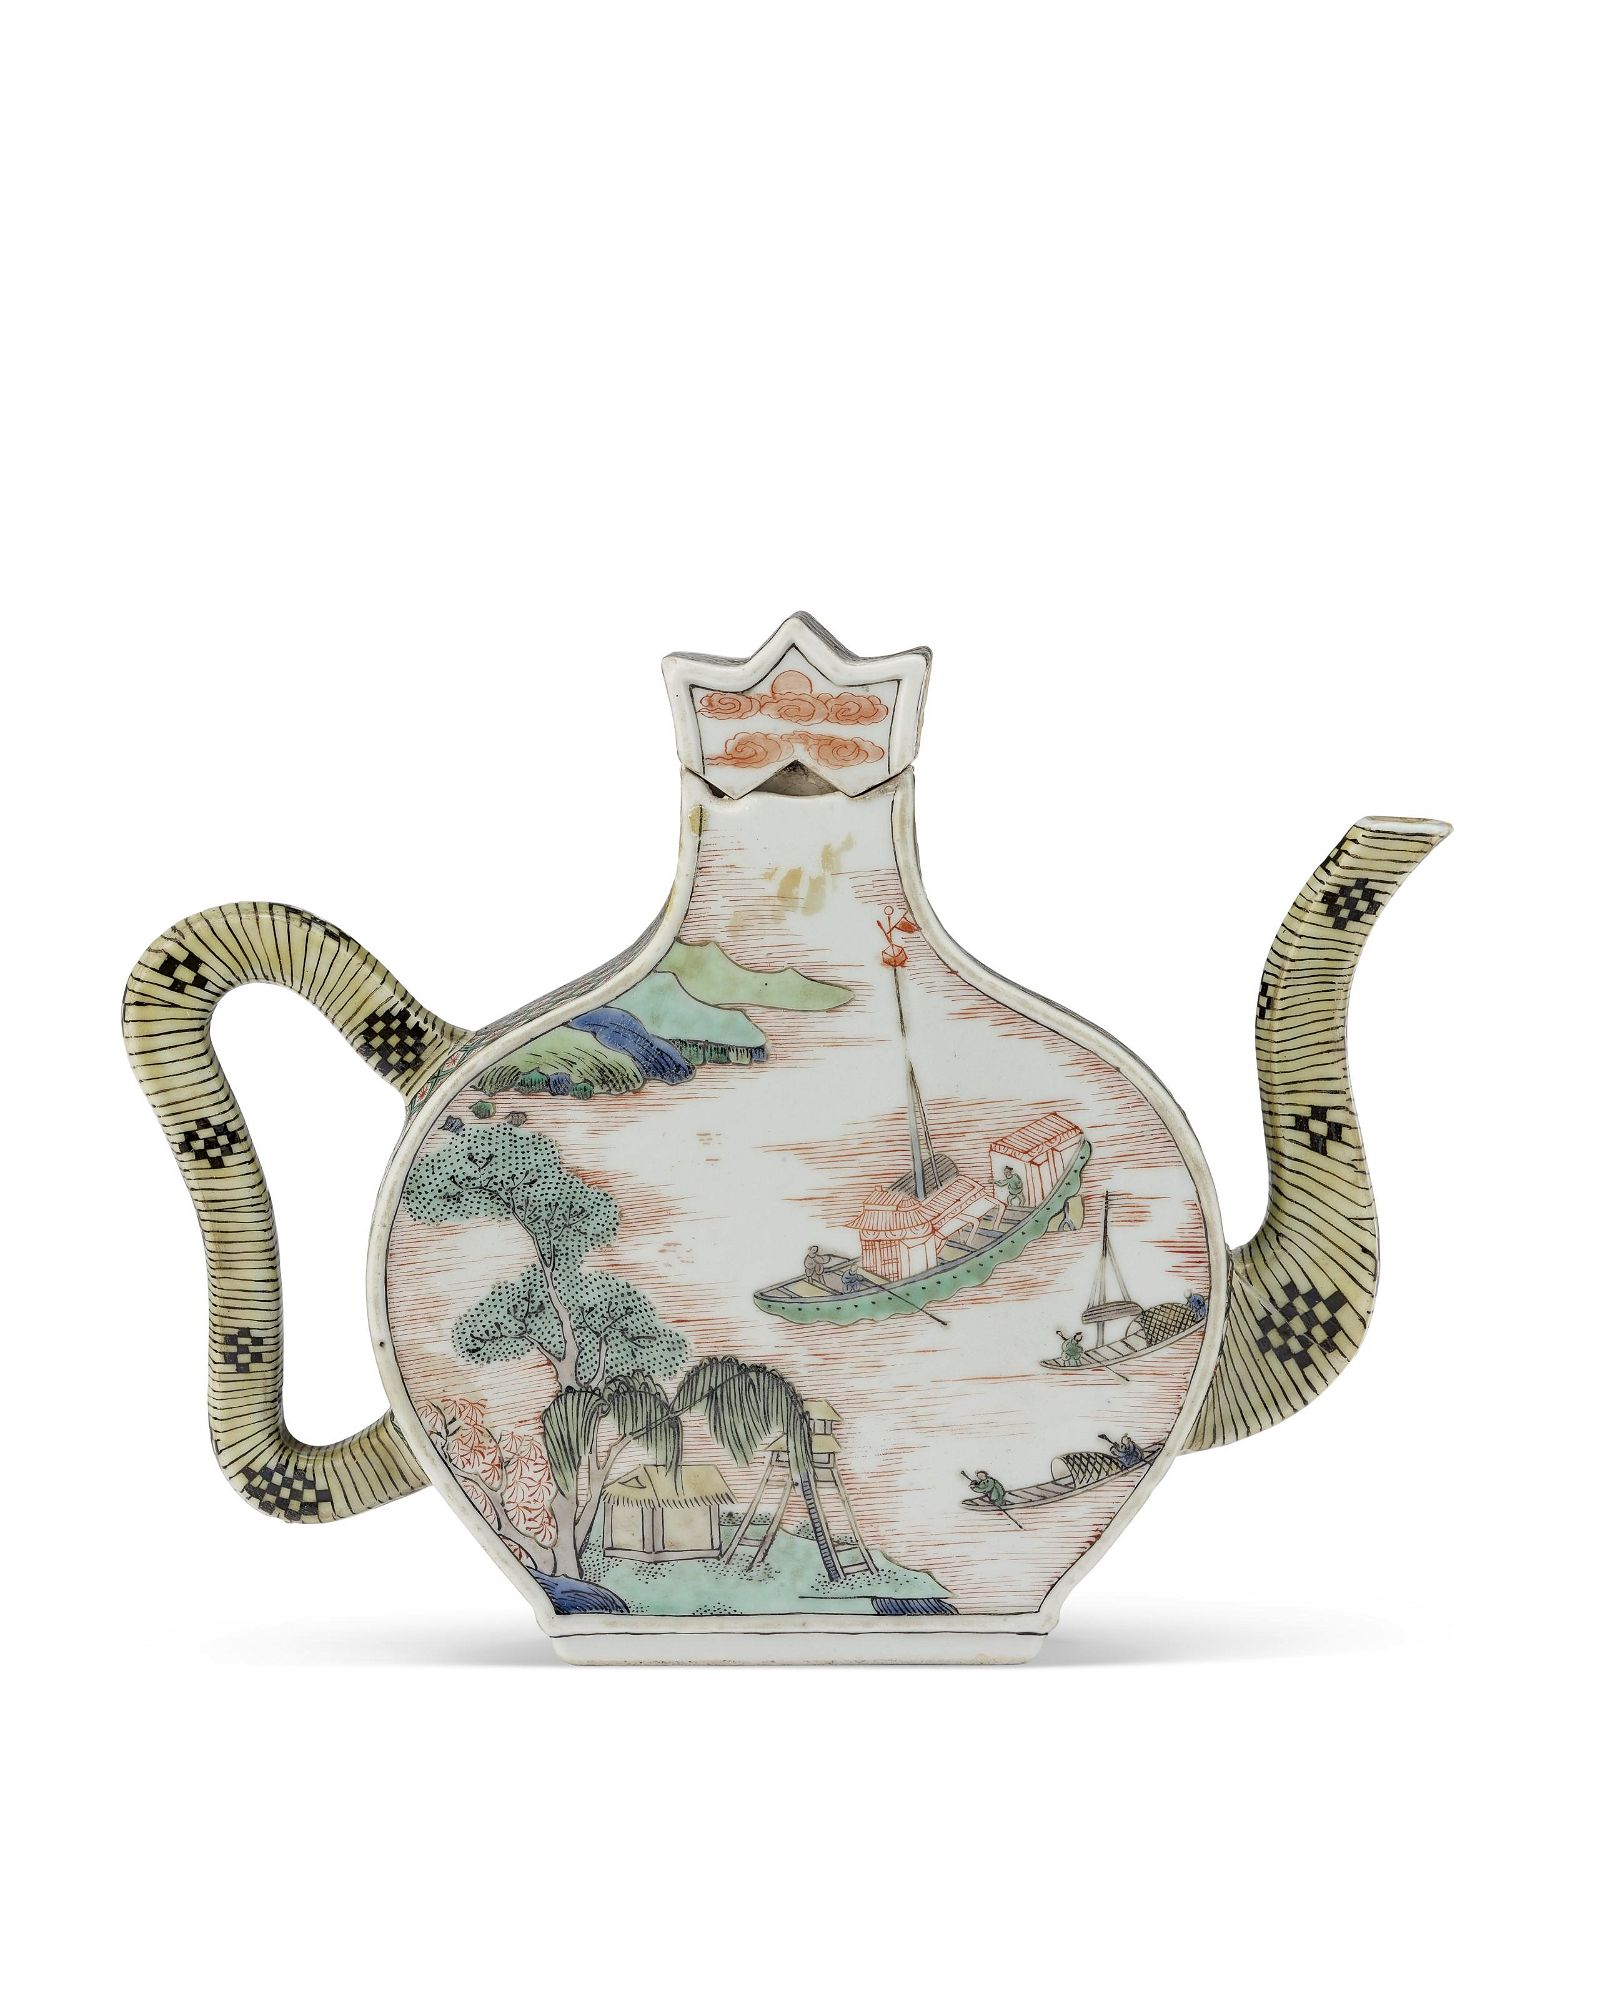 A CHINESE FAMILLE VERTE WINE POT AND COVER